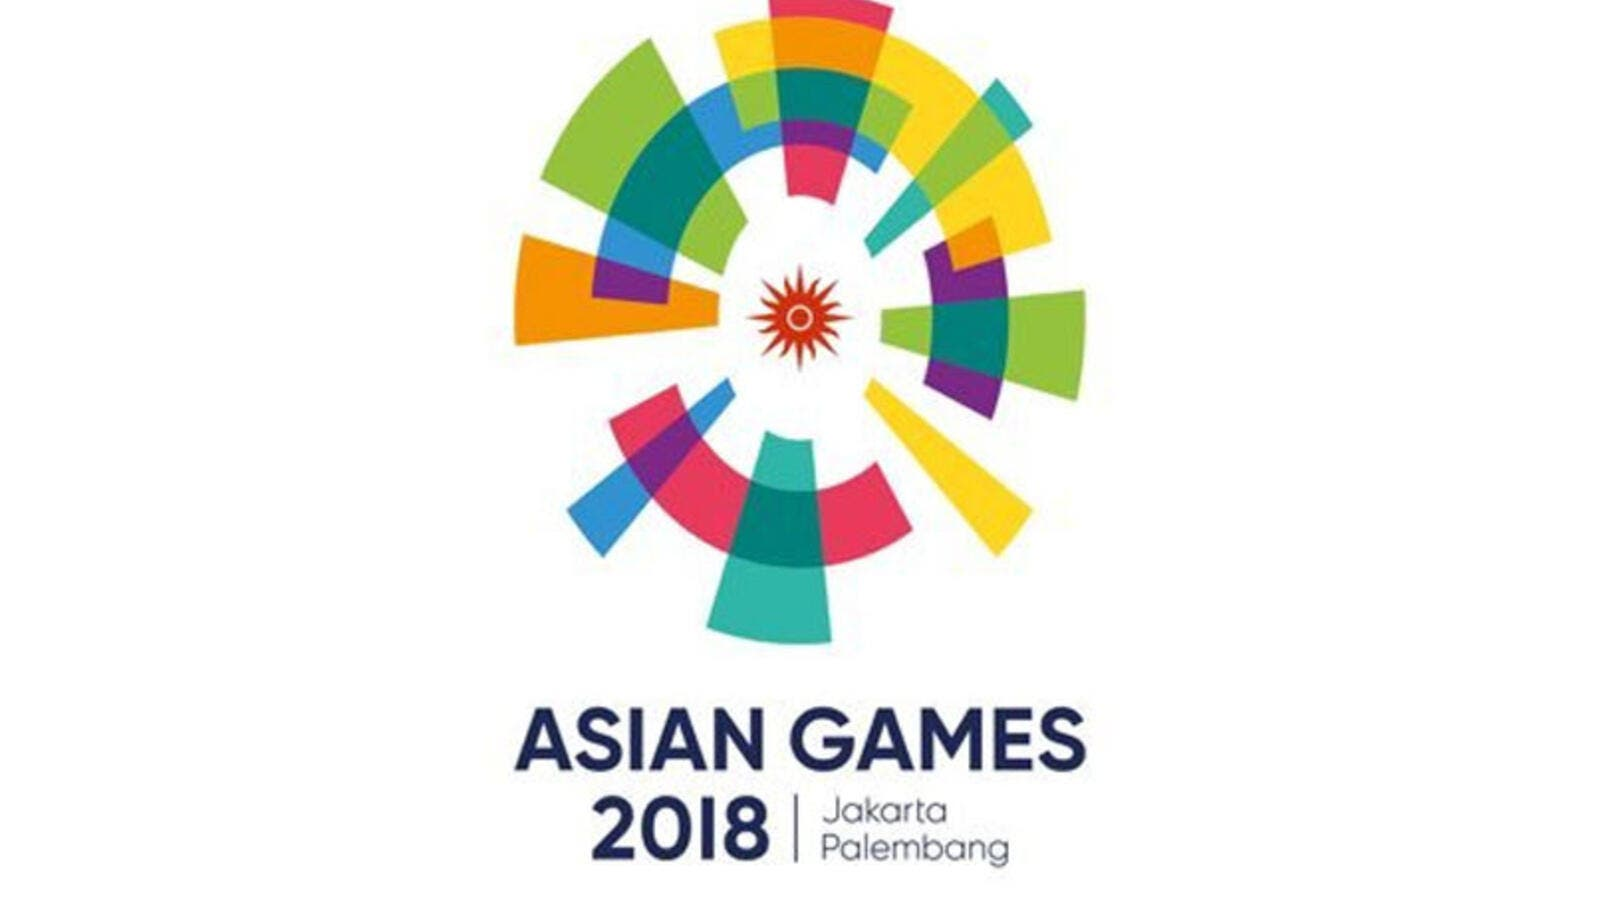 the 2018 Jakarta Asian Games